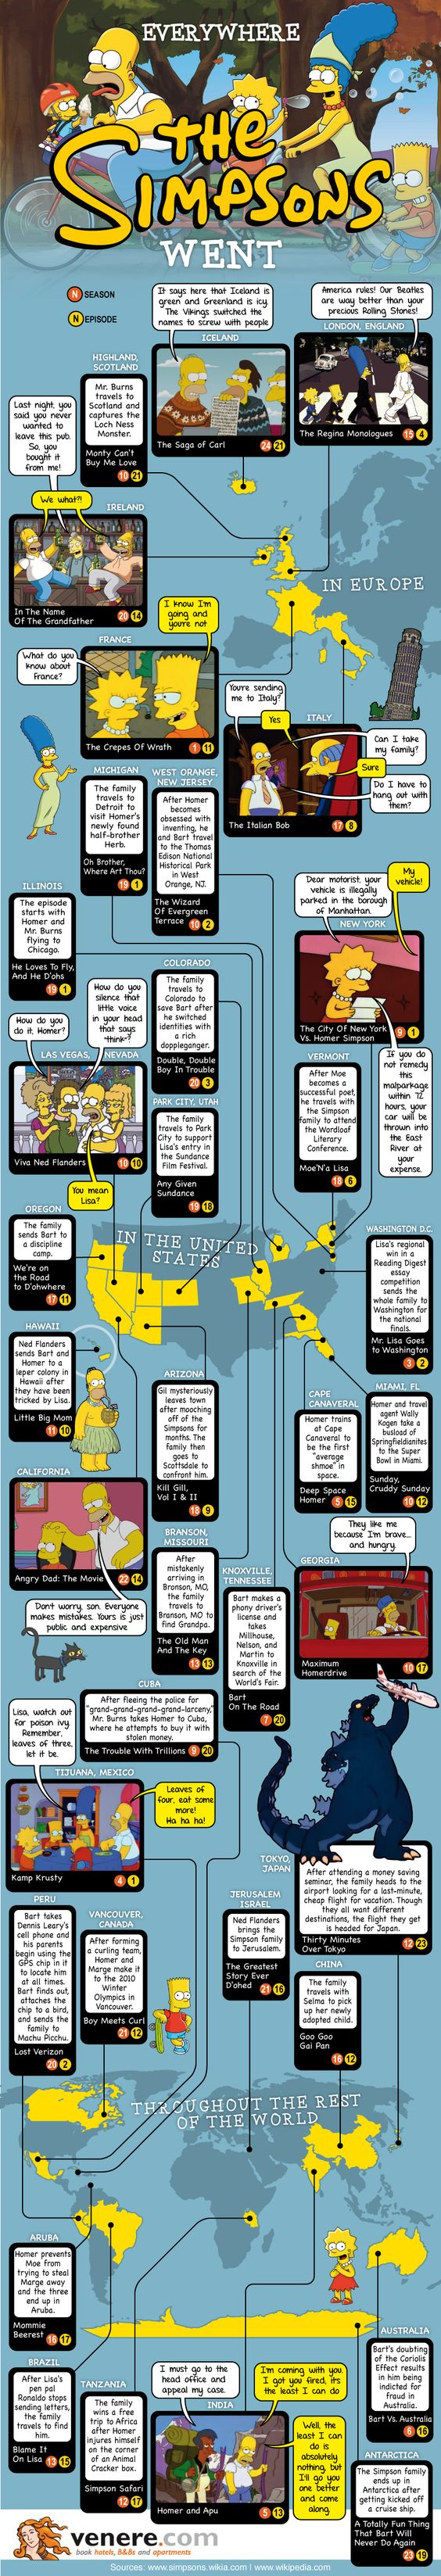 how to get simpsons world in canada